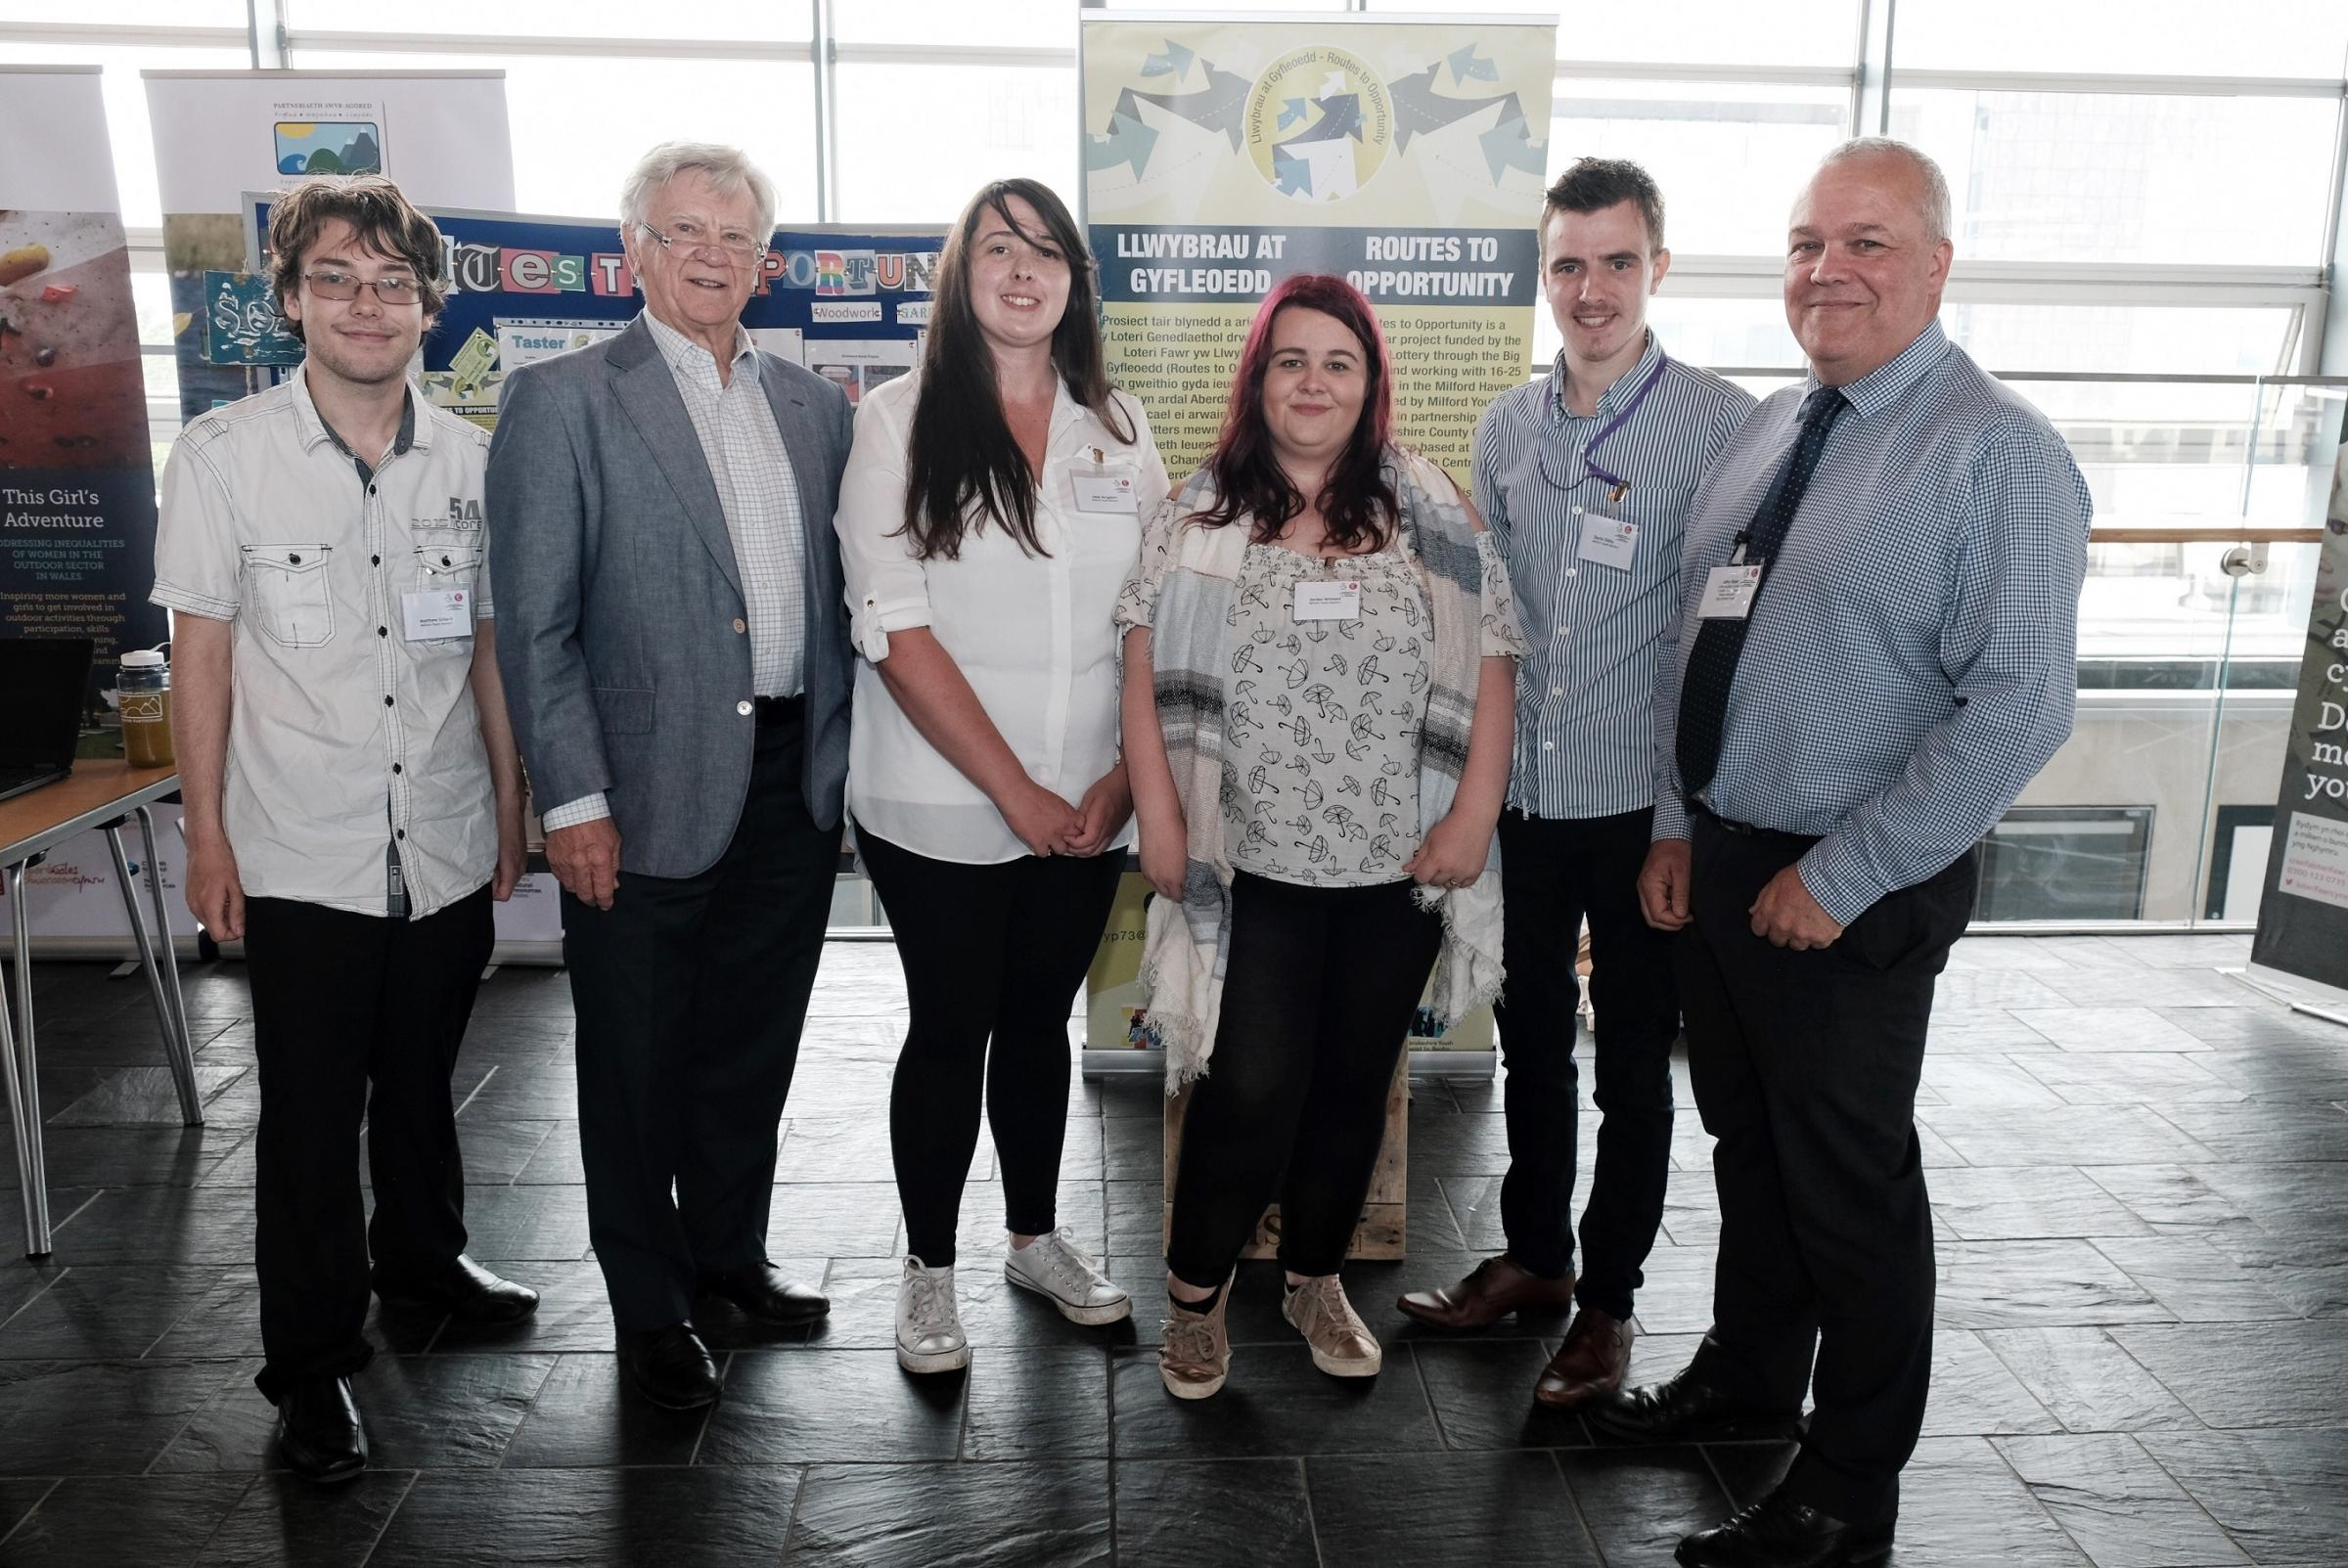 Milford Youth Matters including Jordan and Jade with Big Lottery Fund Wales Director John Rose and Sir Adrian Webb.